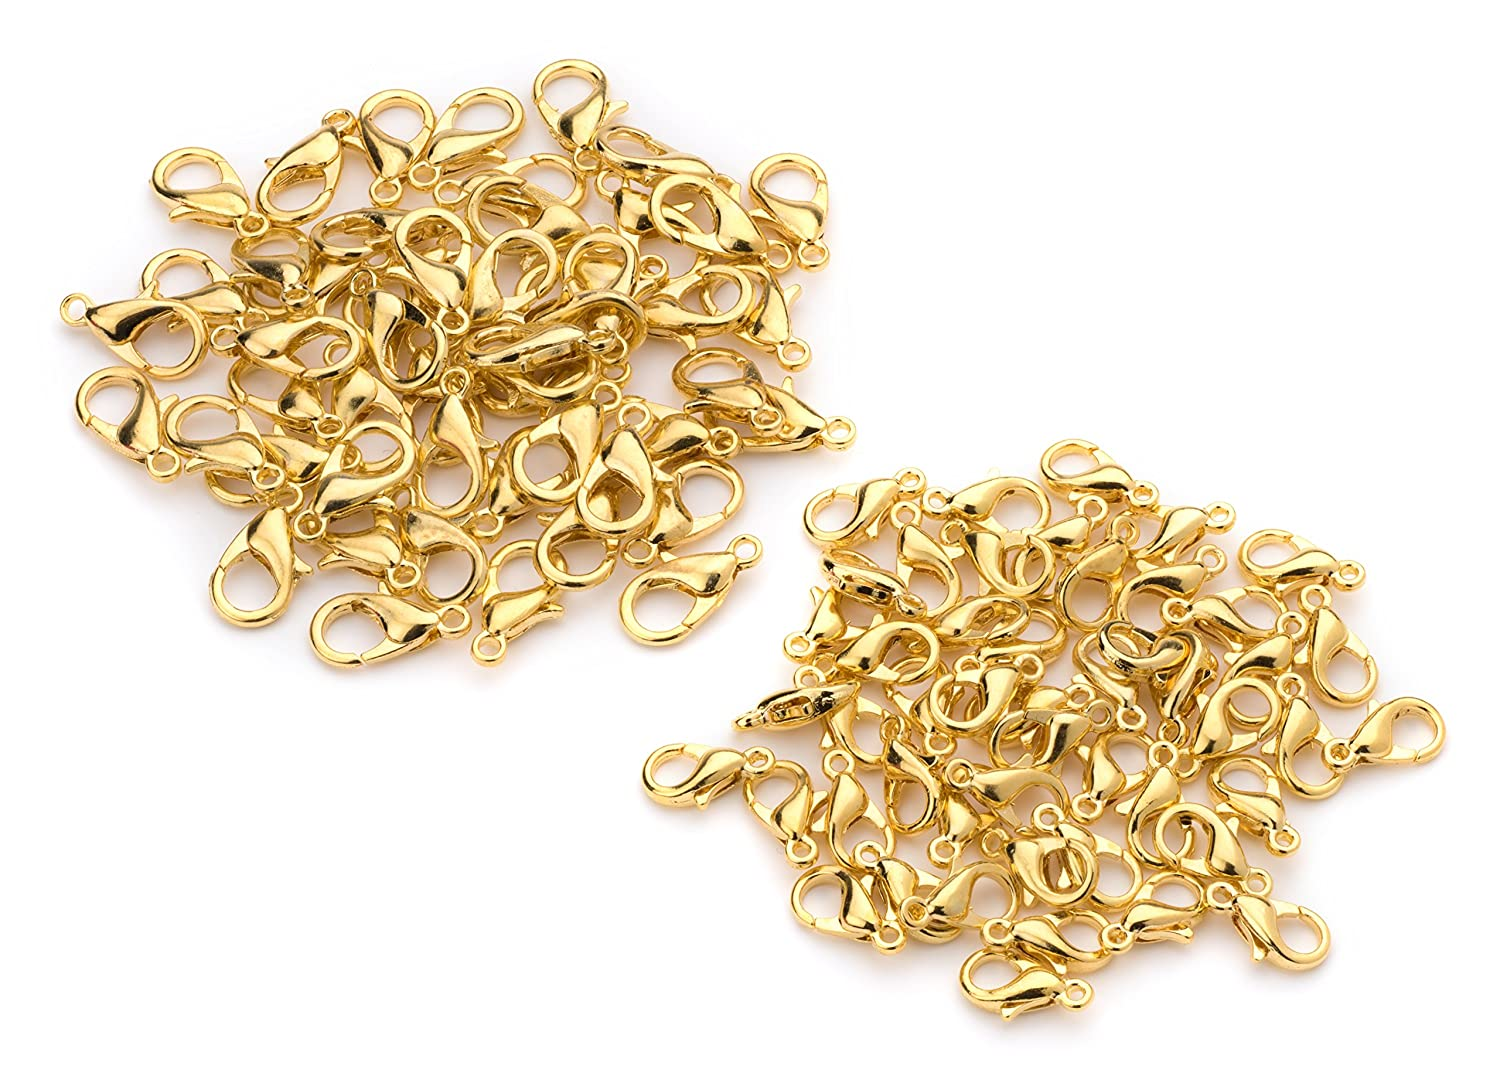 100 Lobster Clasps Gold Plated 50(12x6) 50(10x5) Lobster claw Clasp Jewelry Findings Lead & Nickel Free